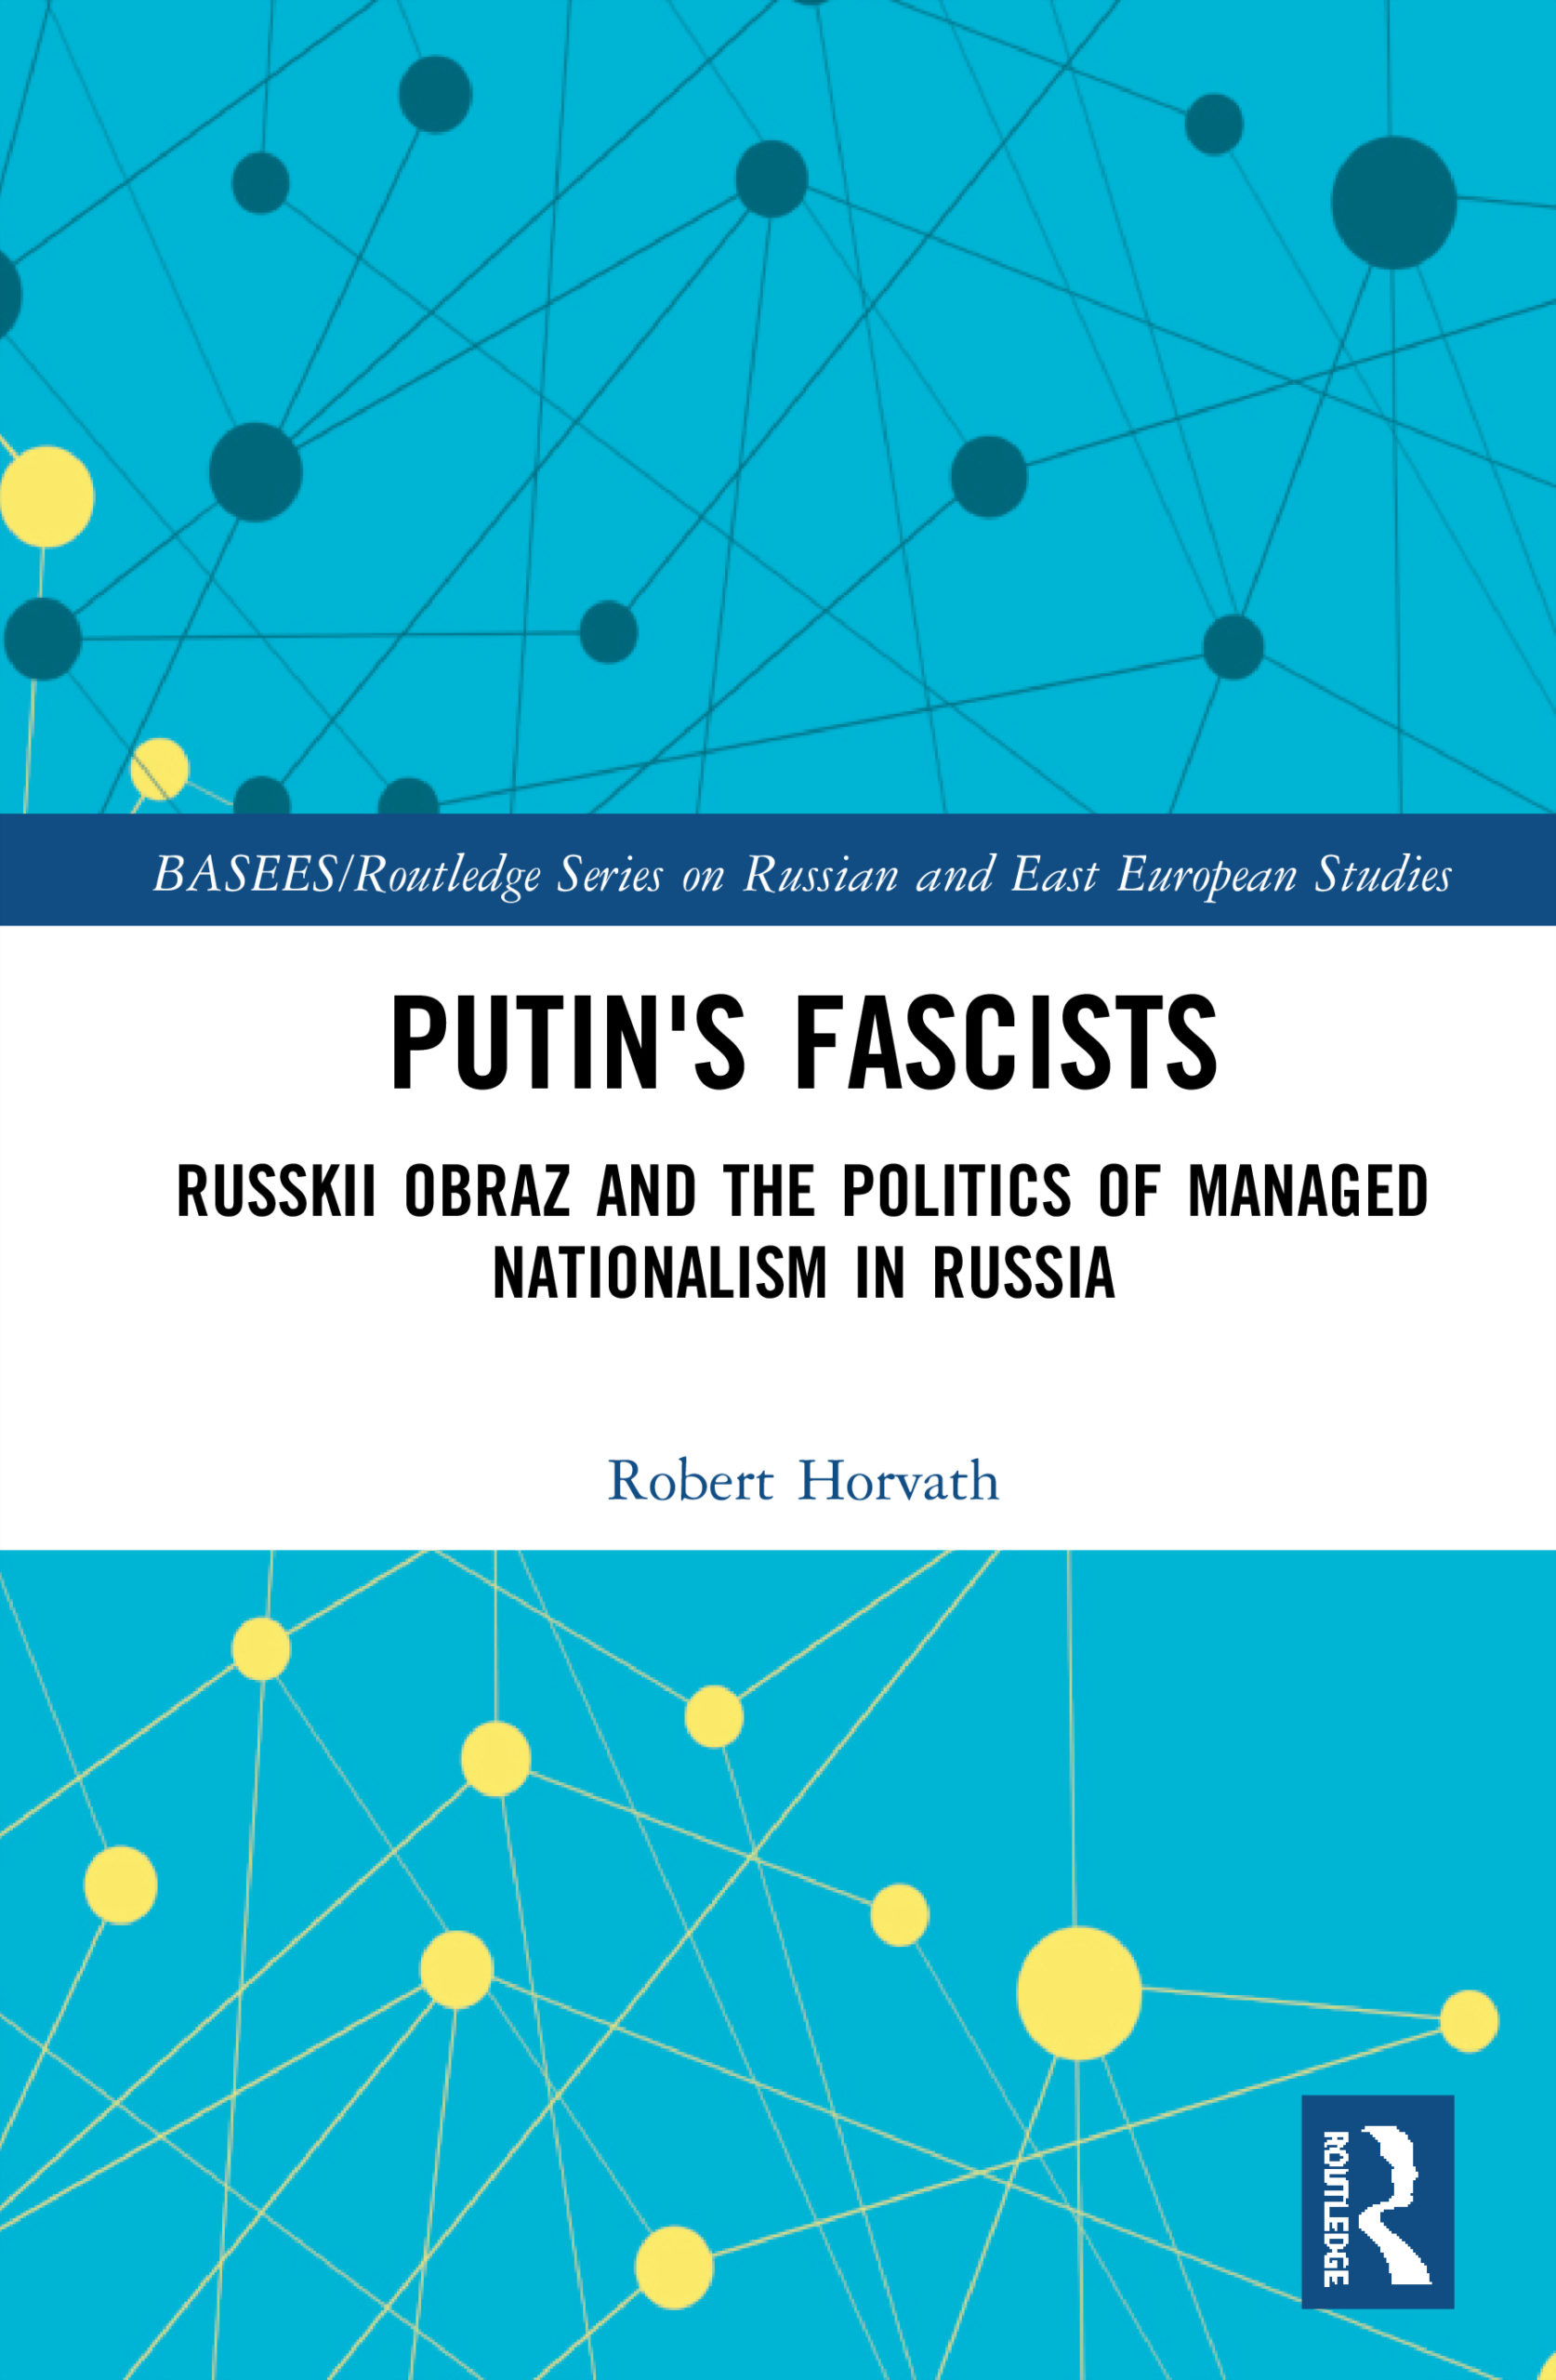 Putin's Fascists. Russkii Obraz and the Politics of Managed Nationalism in Russia